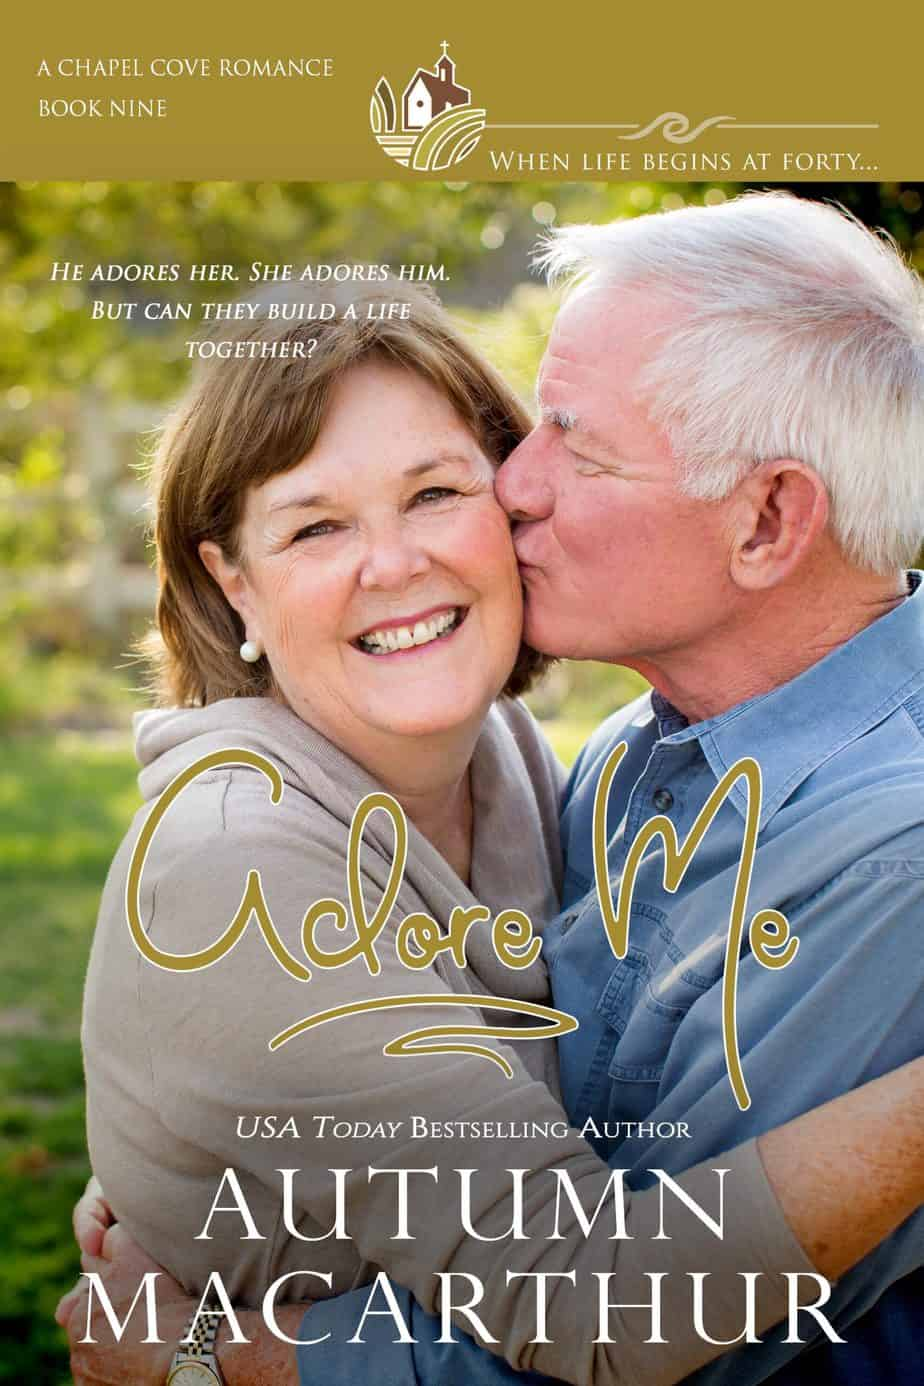 Sweet small-town older couple second-time-around Christian romance